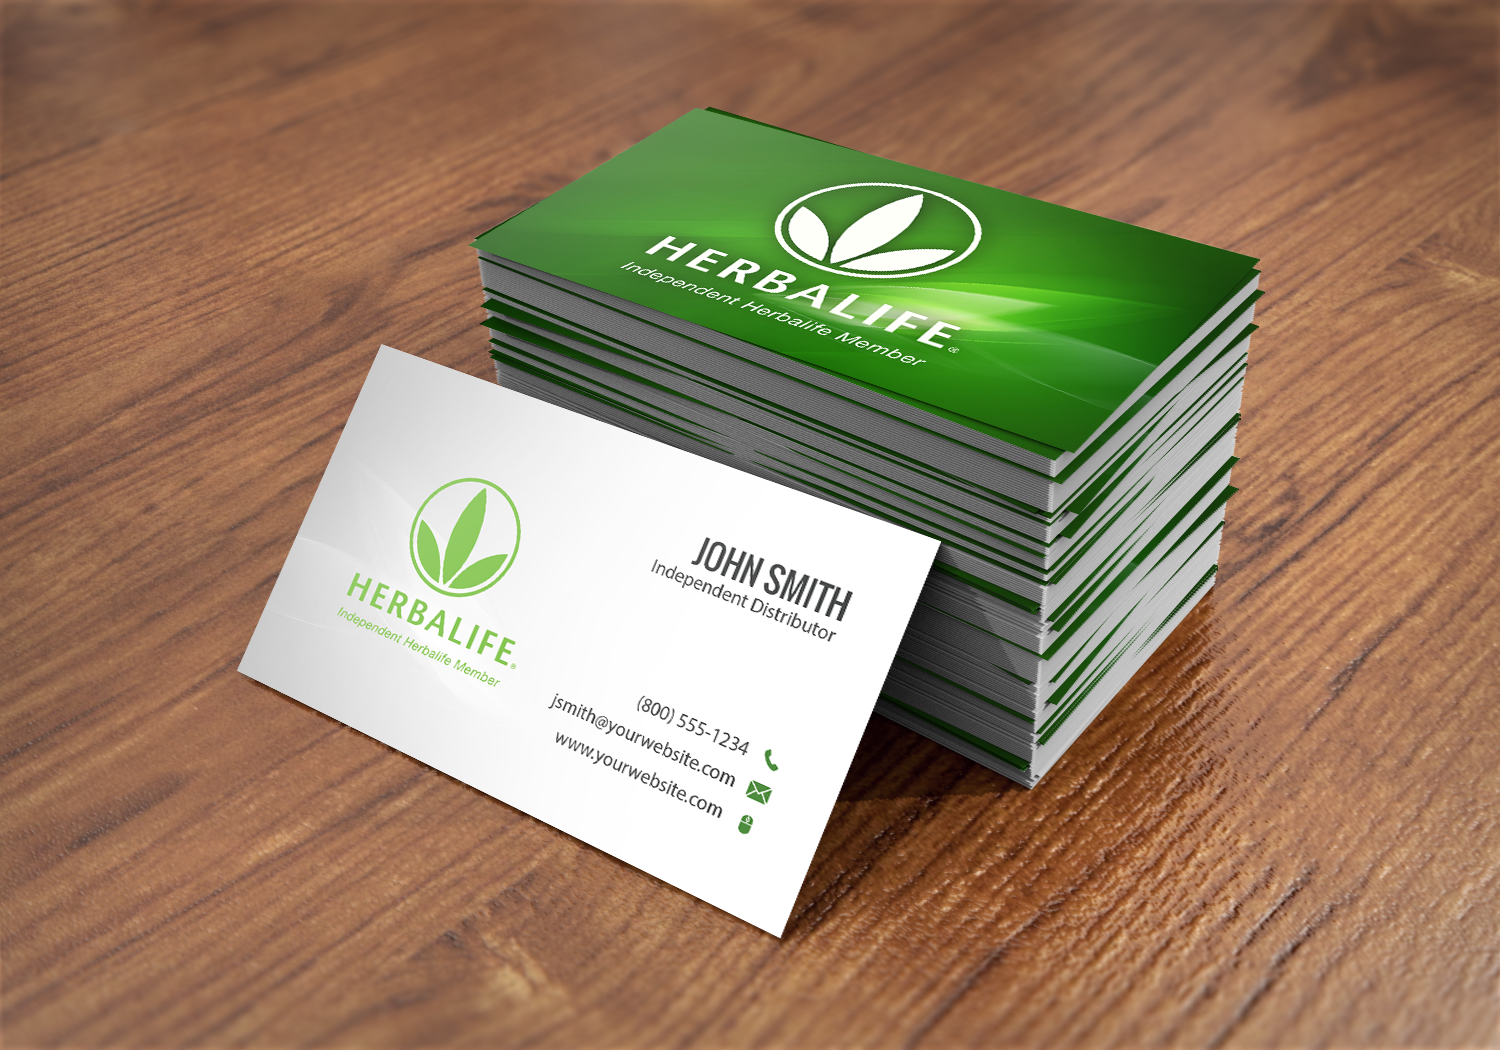 Our Herbalife Business Cards Are Sure To Make A Great First Impression Mlm Herbalife Distributors W Herbalife Business Cards Herbalife Herbalife Business